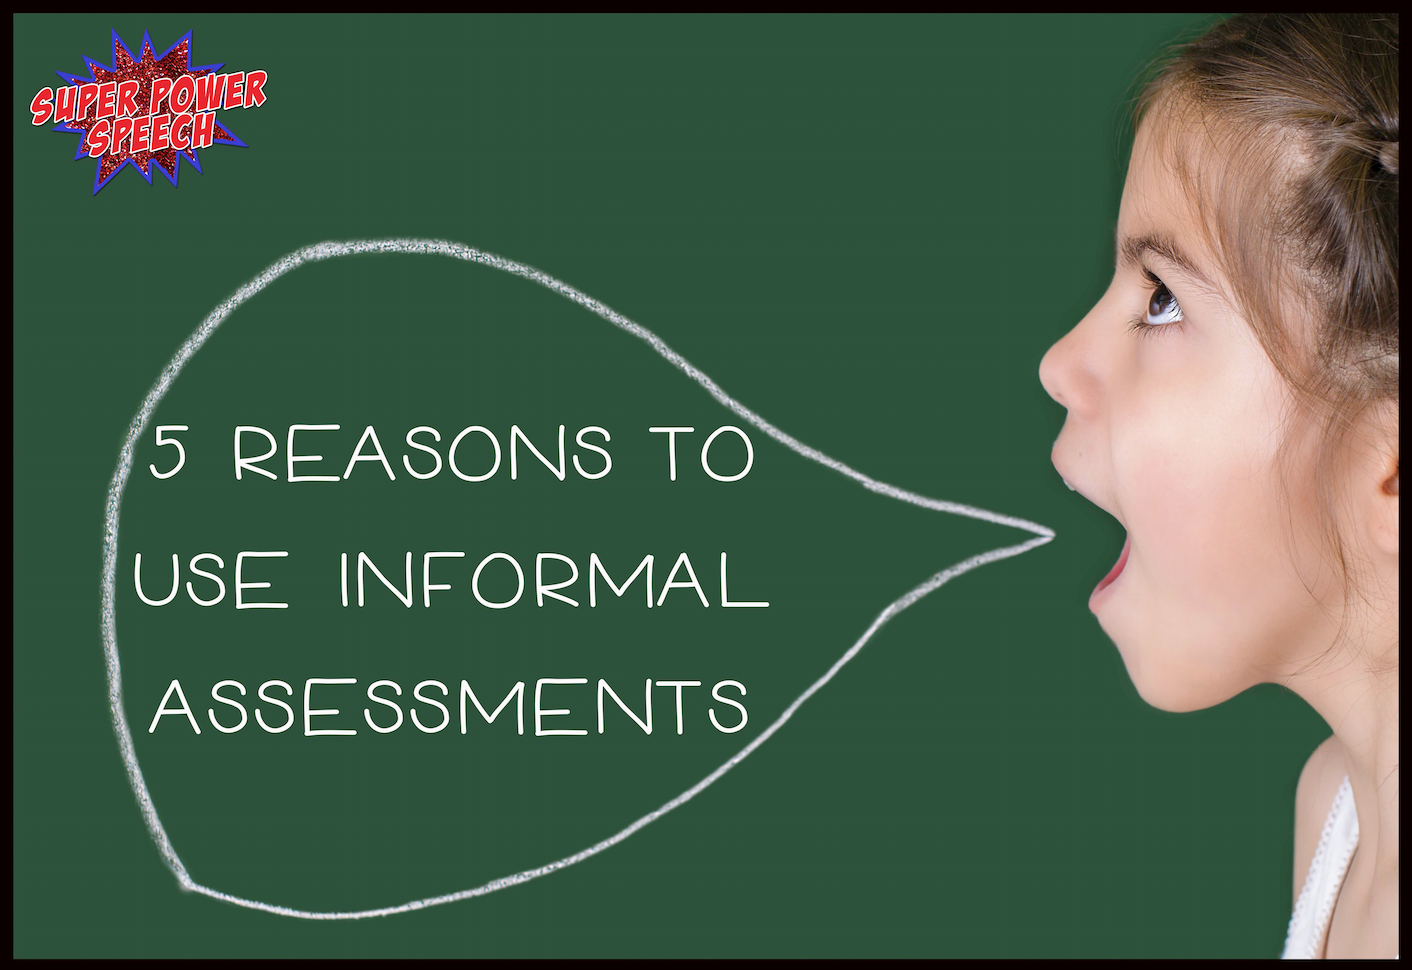 5 Reasons to Use Informal Assessments